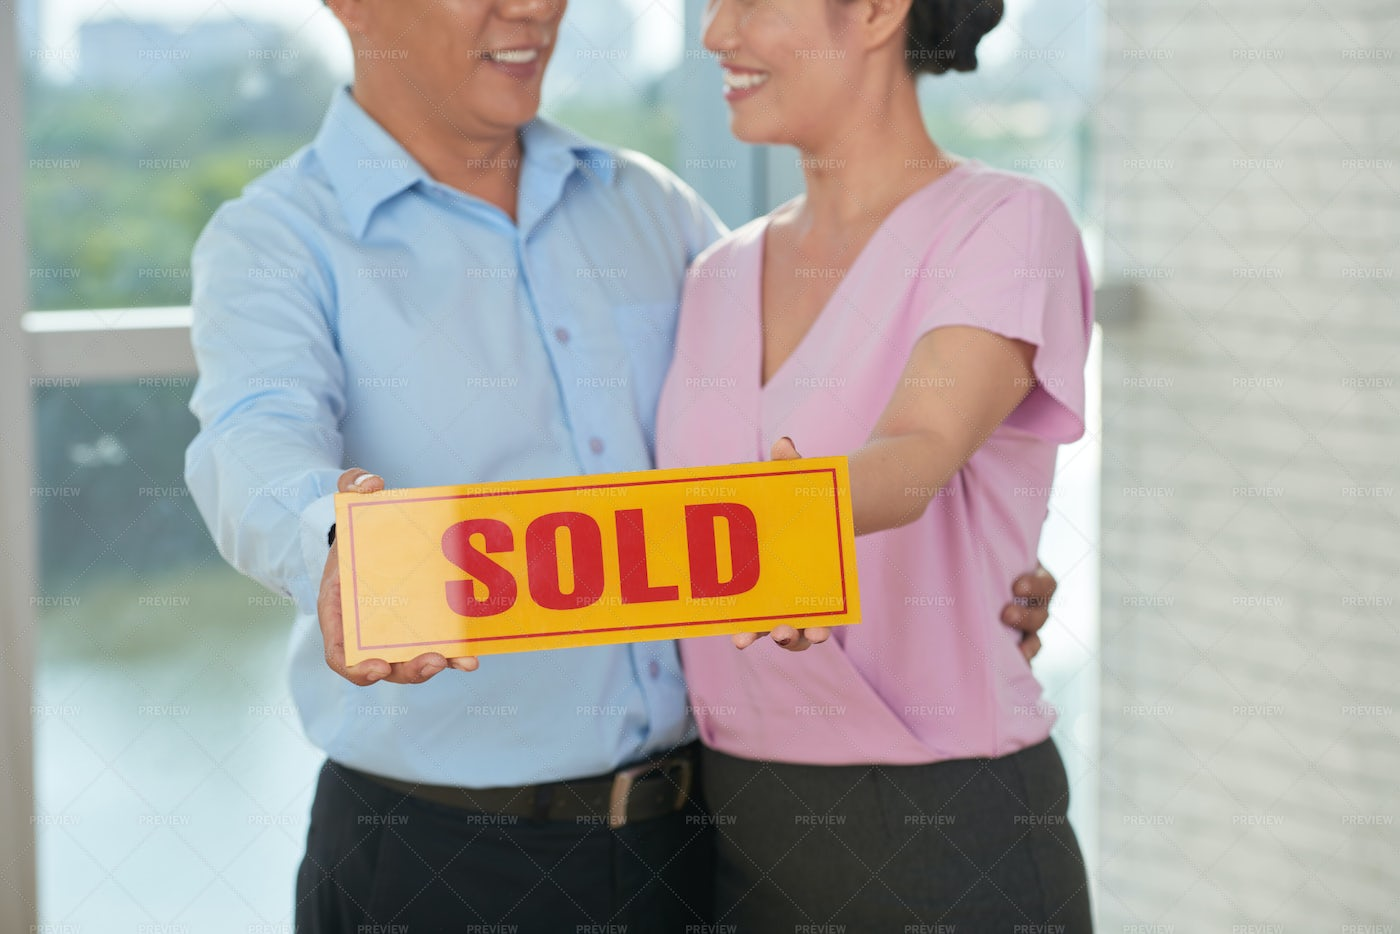 We Bought It: Stock Photos